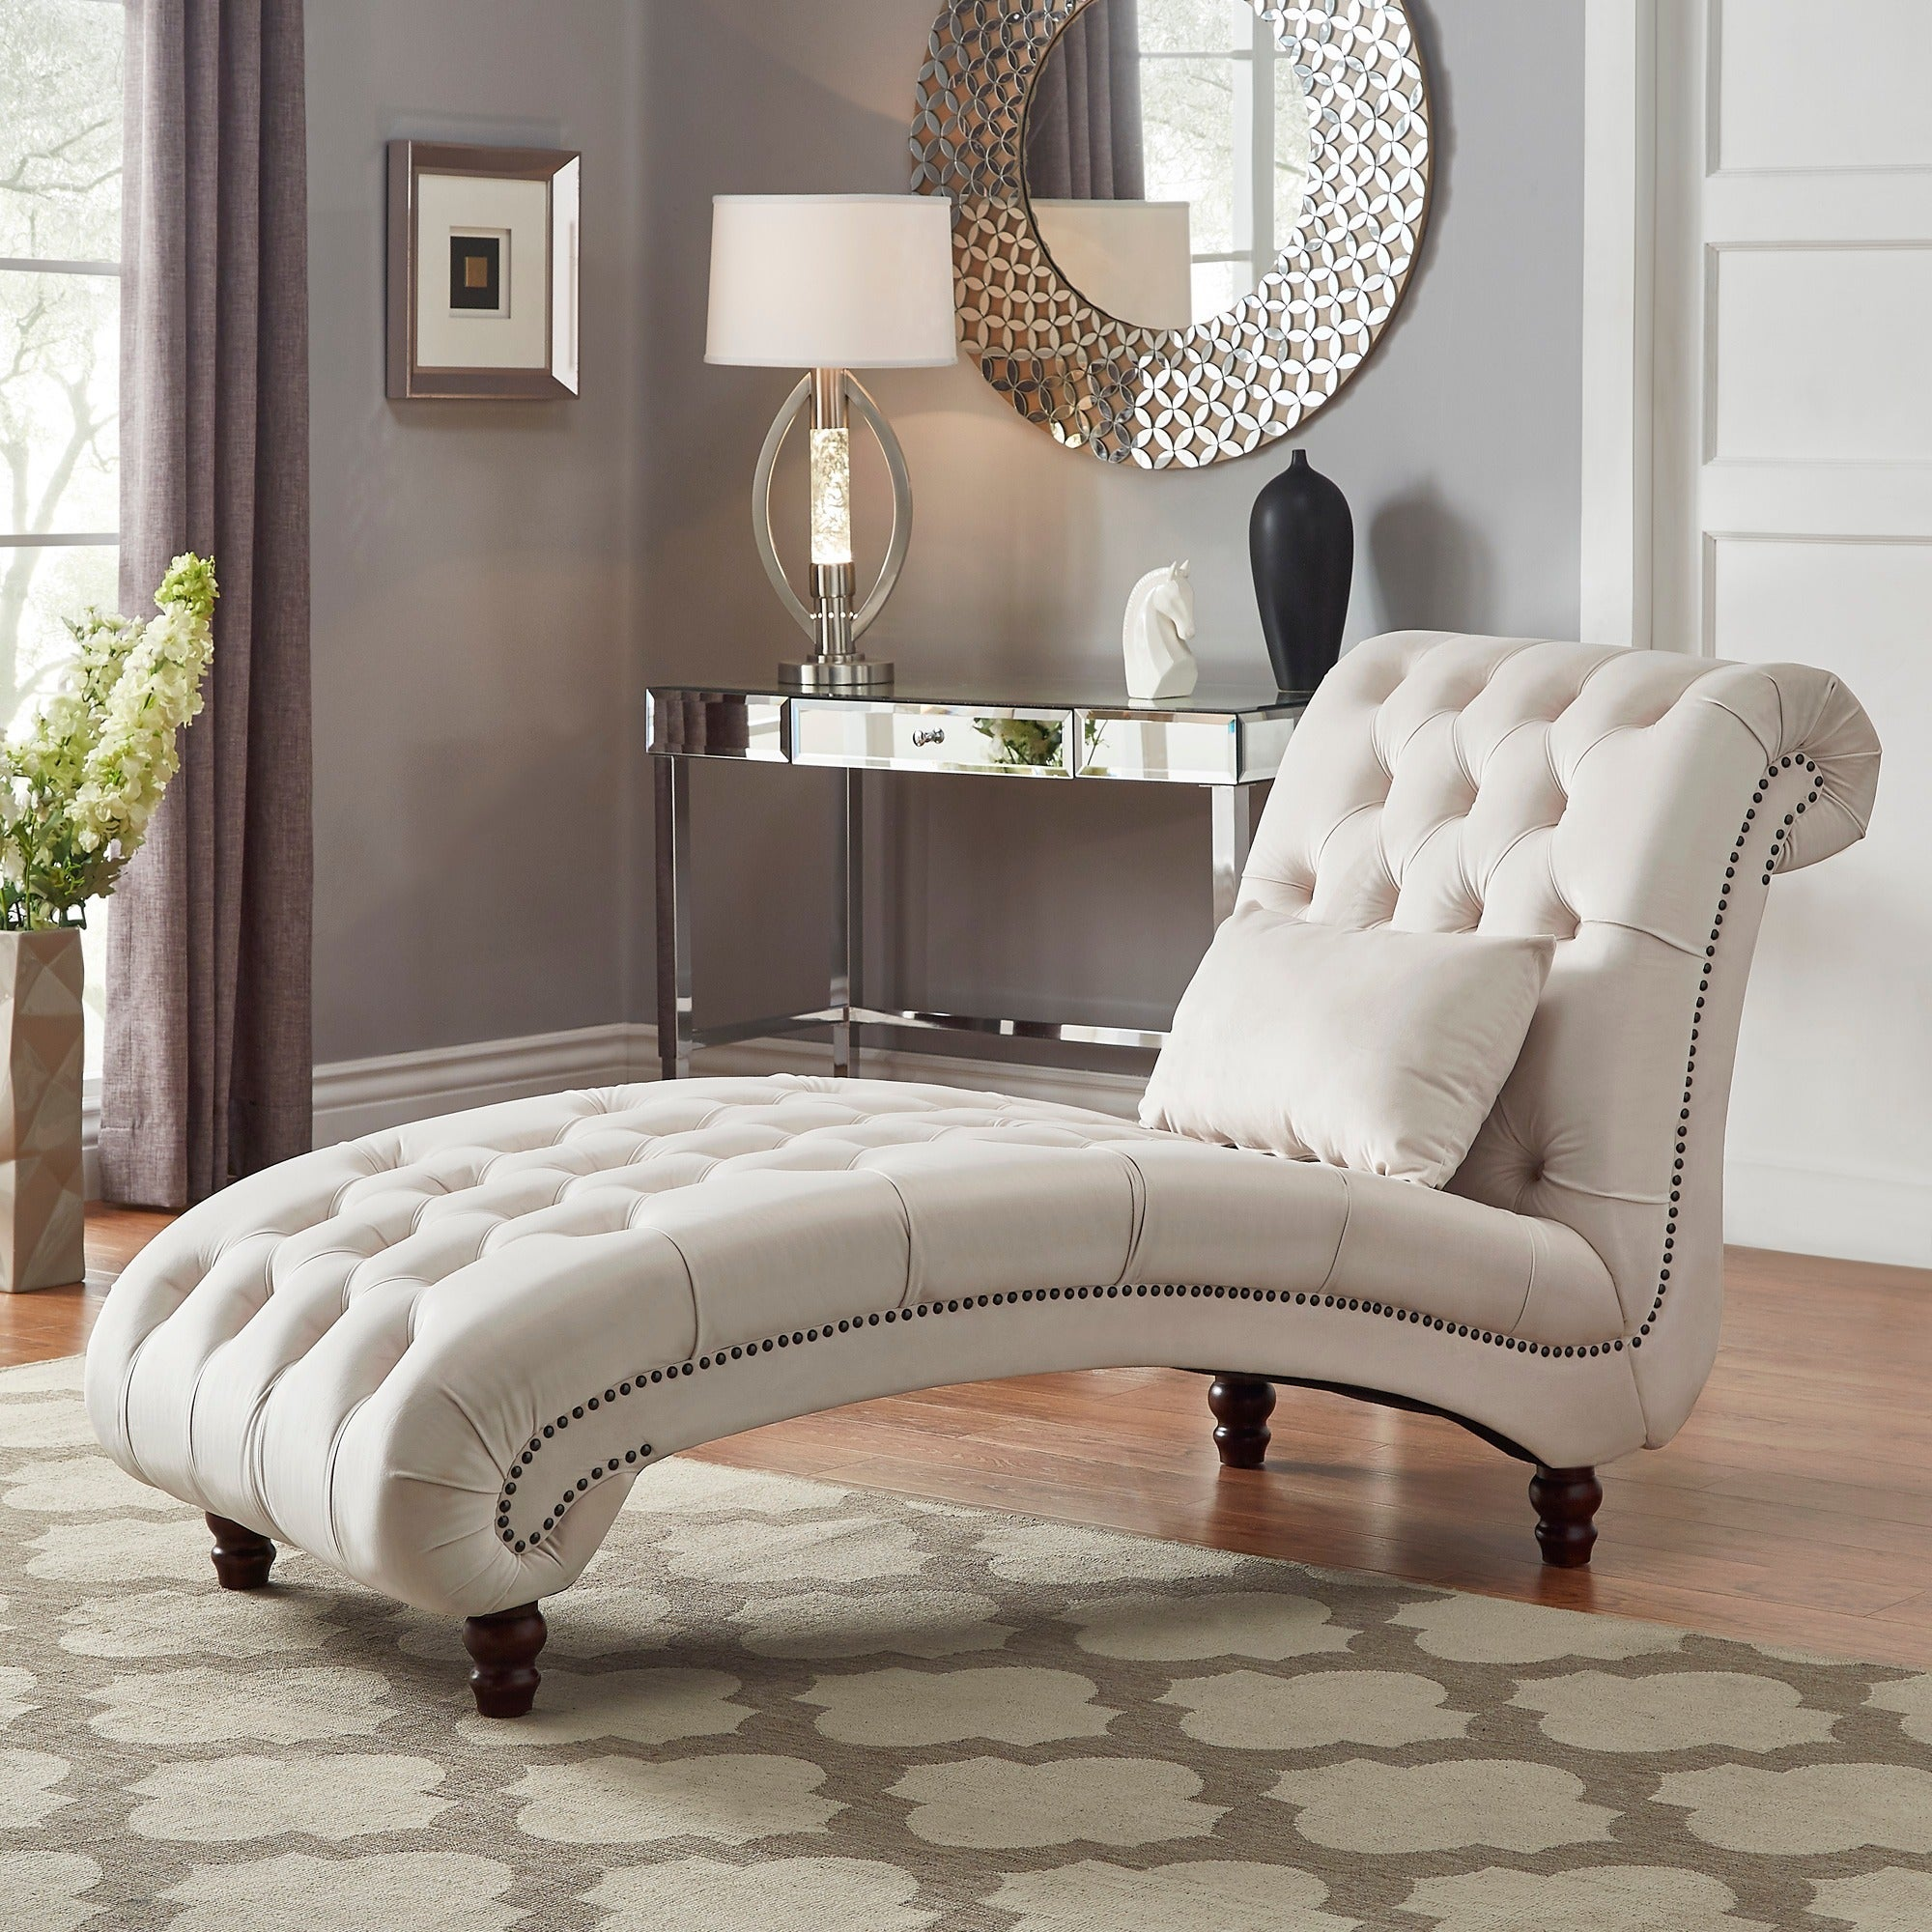 Superbe Shop Knightsbridge Tufted Oversized Chaise Lounge By INSPIRE Q Artisan    Free Shipping Today   Overstock.com   20603799